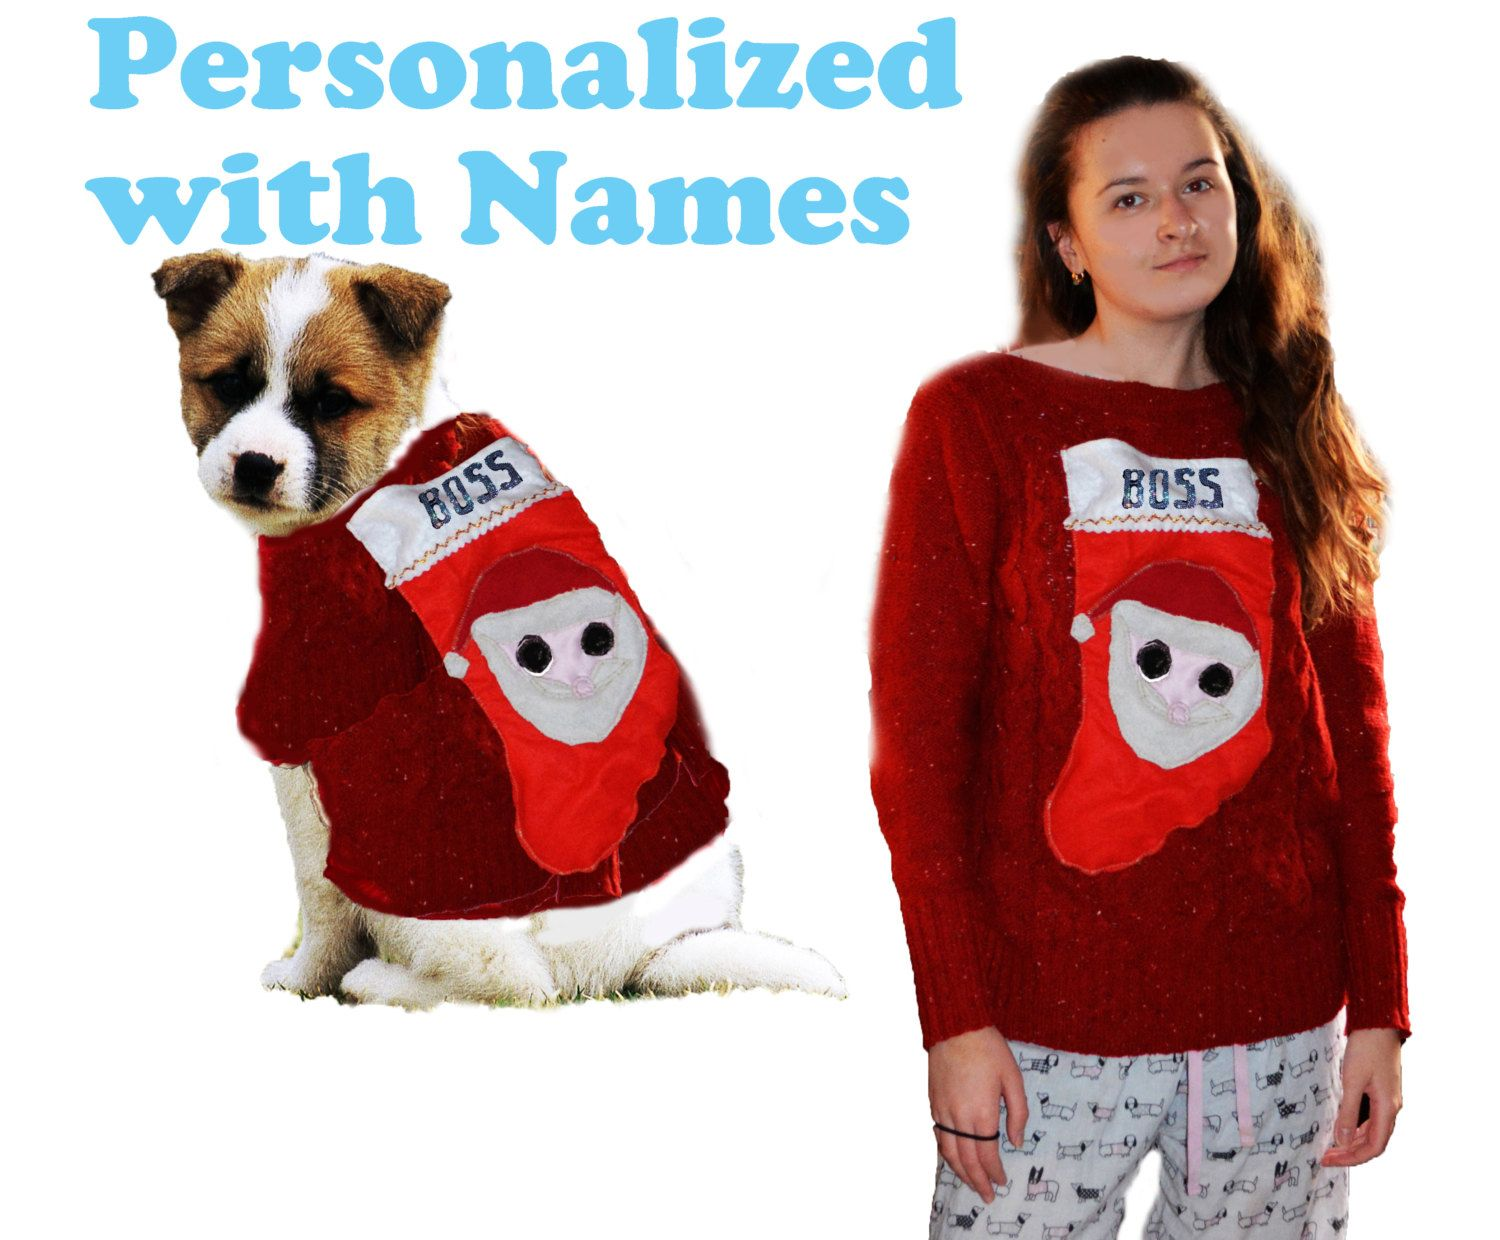 usa charity seller dog all sizes owner l holiday christmas matching sweater matching personalized with names custom dog owner sweater by hoppypuppies